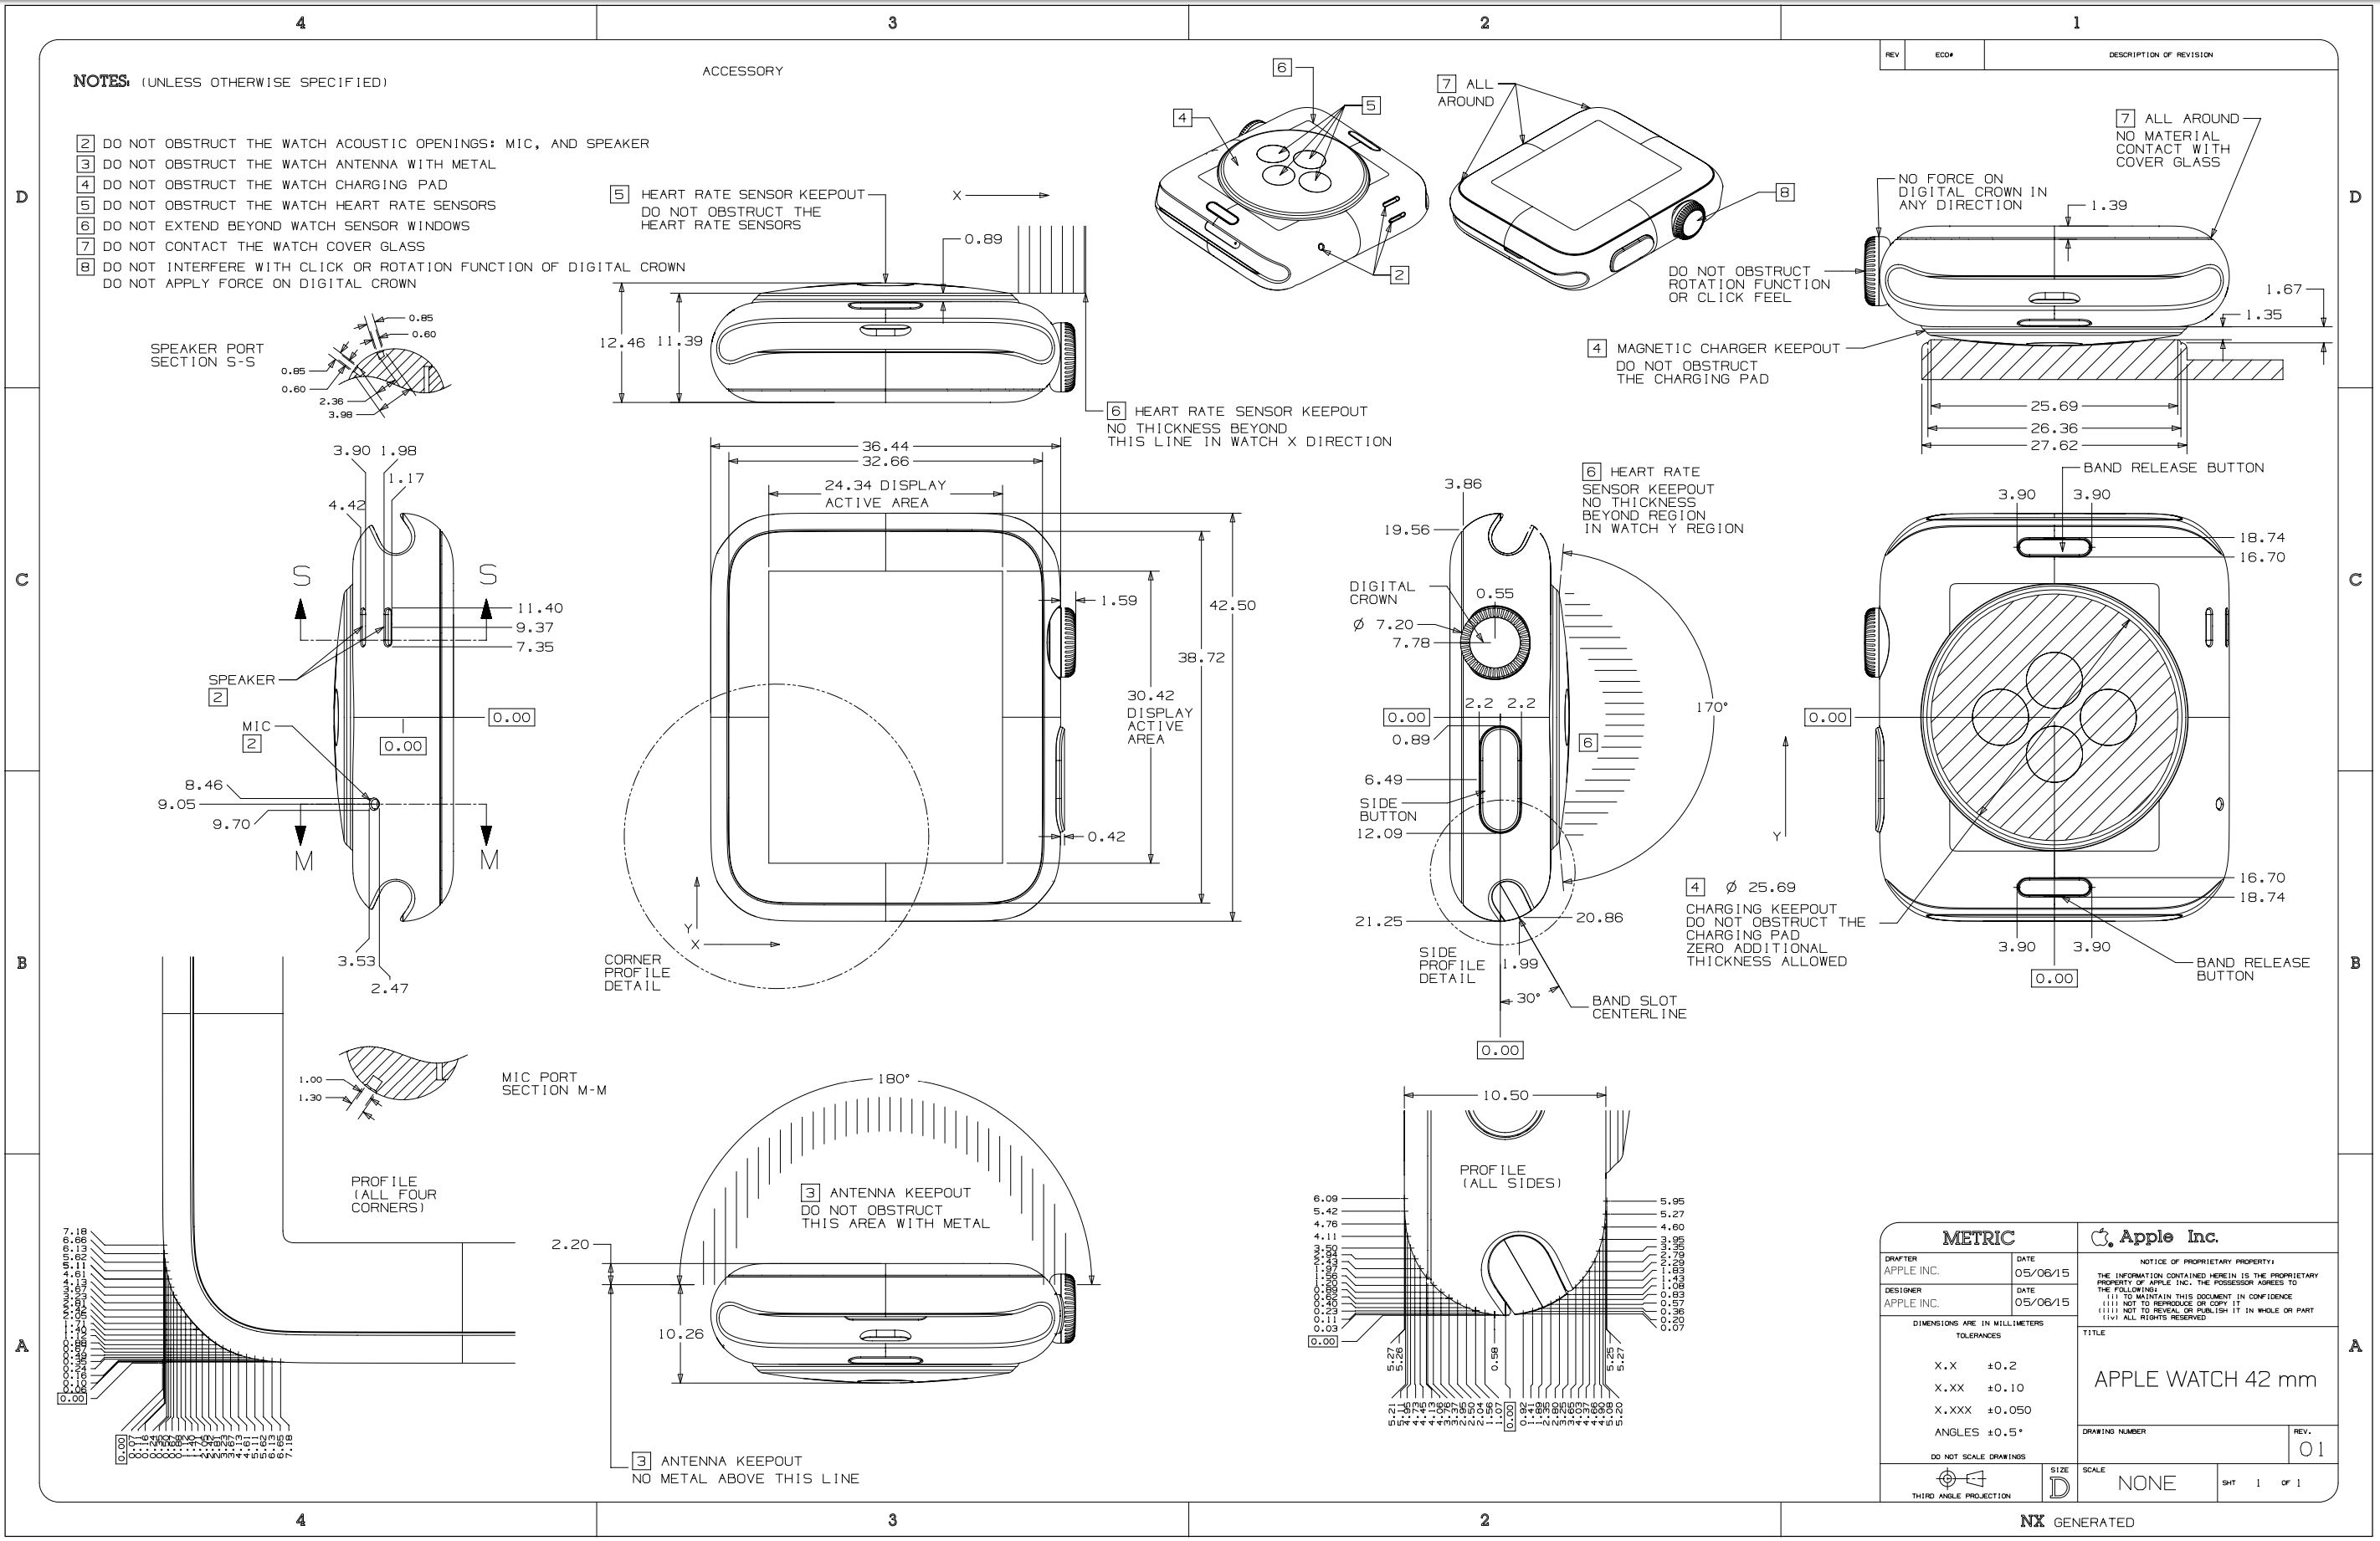 Apple Releases Watch S Cad Drawings To The Public